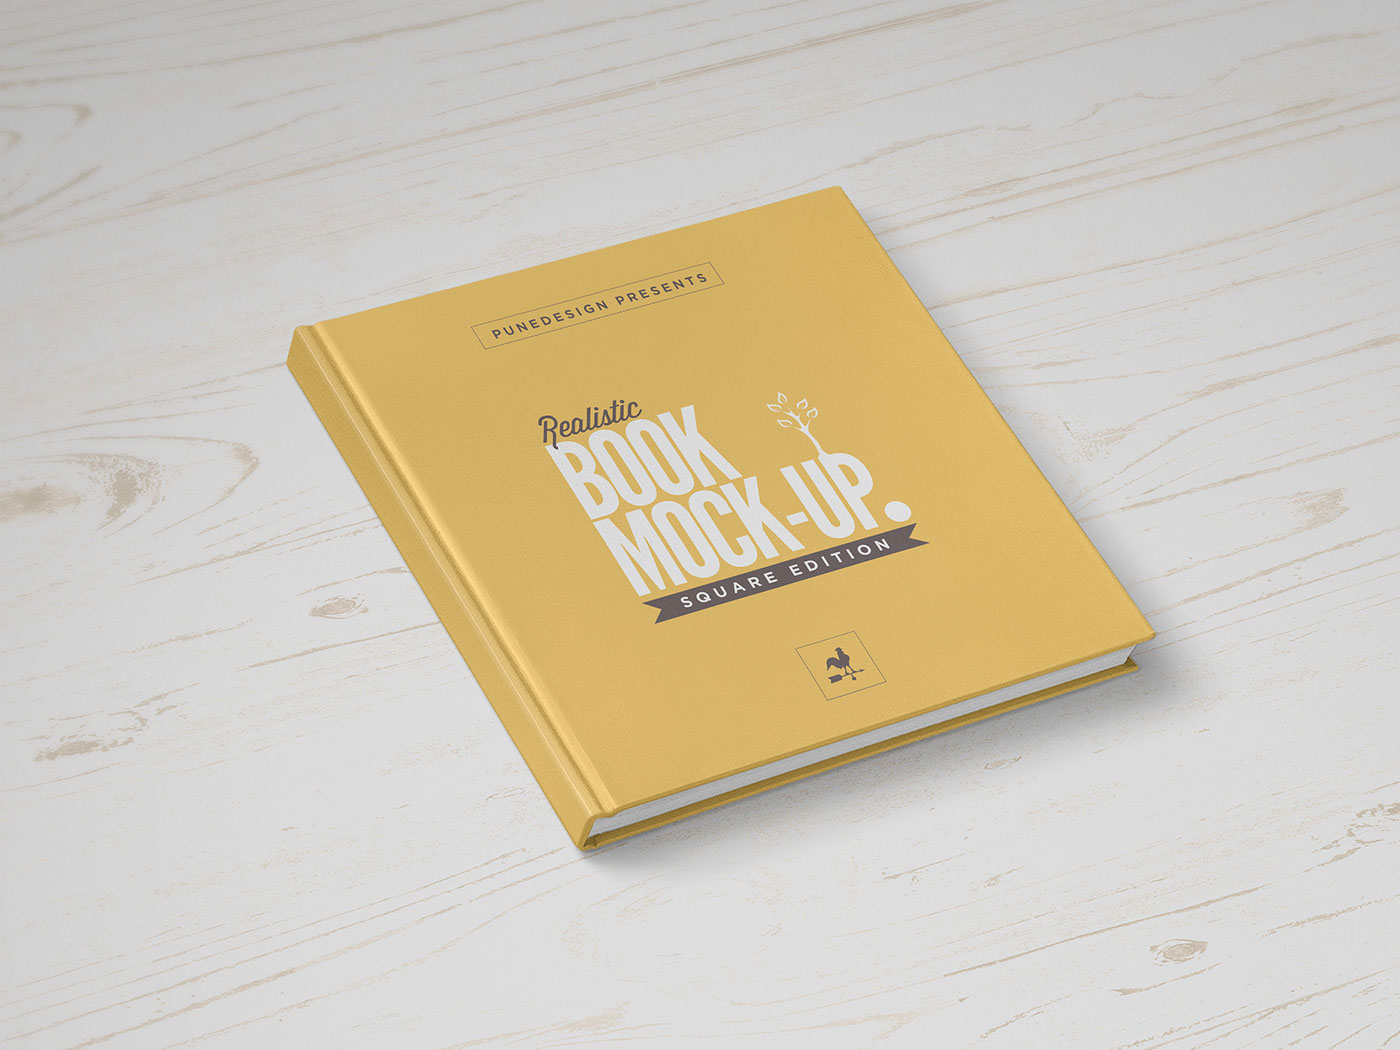 Free-Square-Hardcover-Title-&-Opened-Book-Mockup-PSD-2